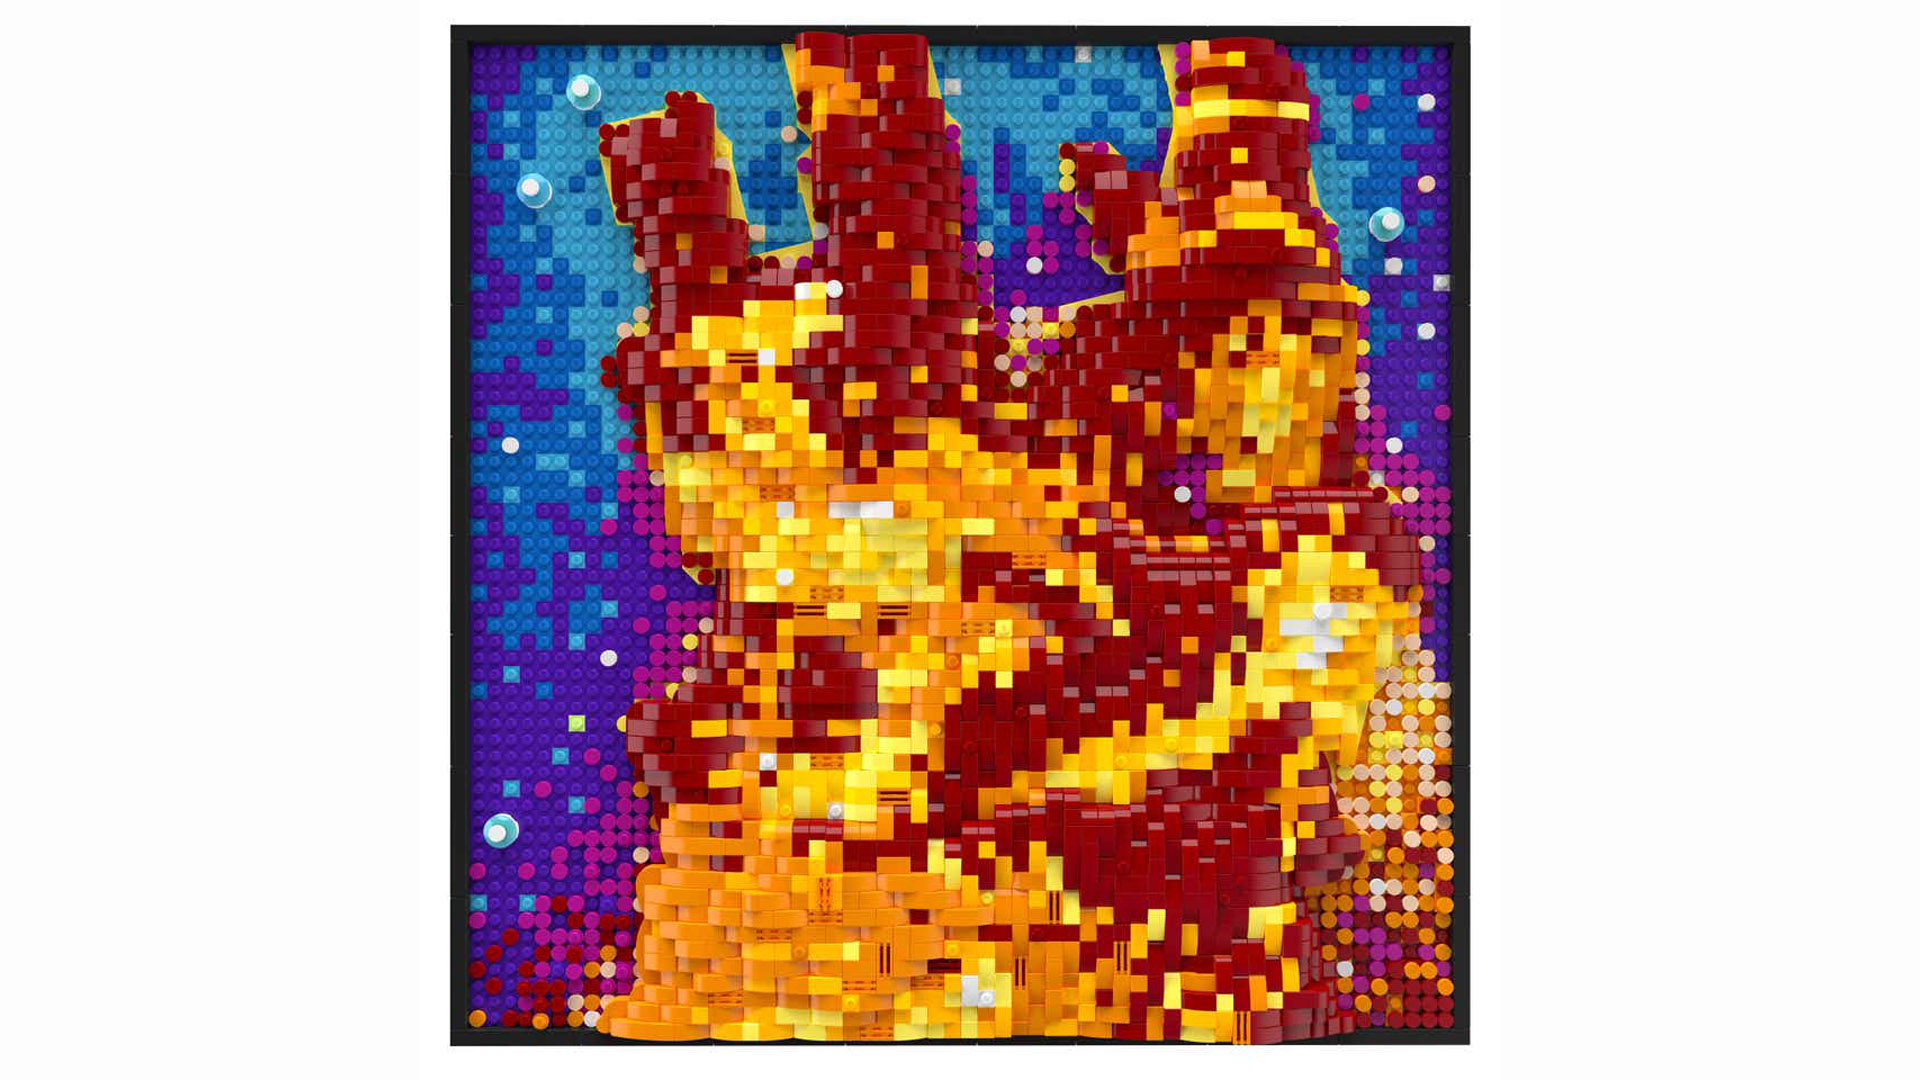 See the Hubble Space Telescope's iconic Pillars of Creation in Lego form